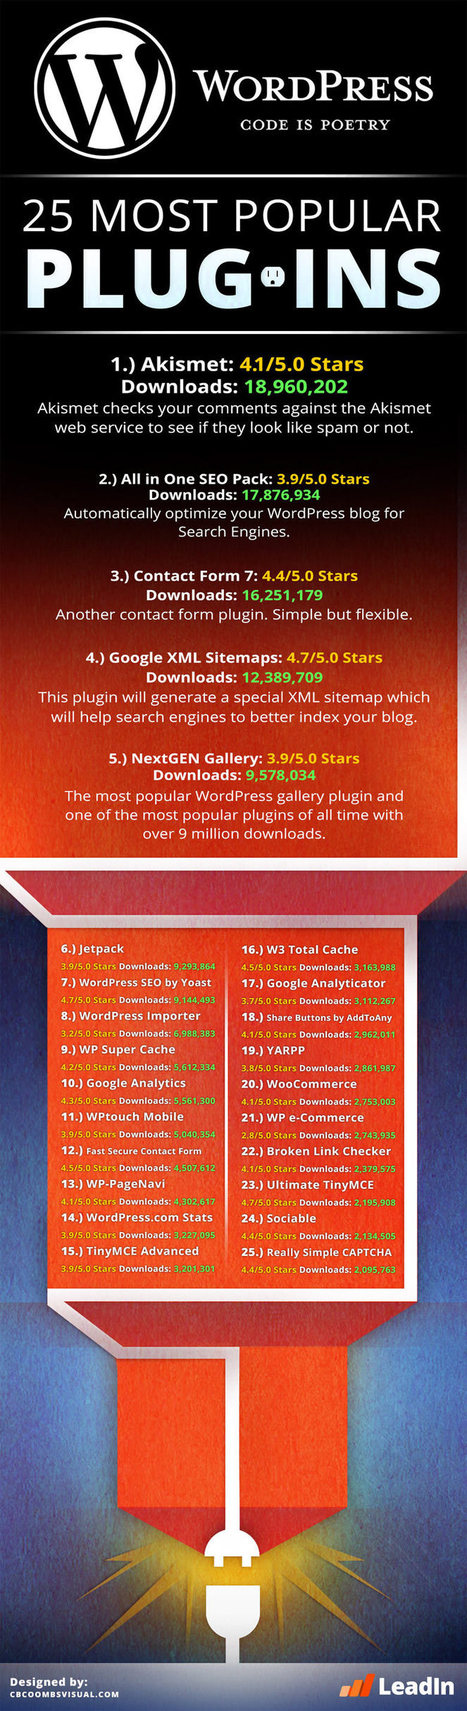 25 Best WordPress Plugins of 2014 [Infographic] | Transformations in Business & Tourism | Scoop.it